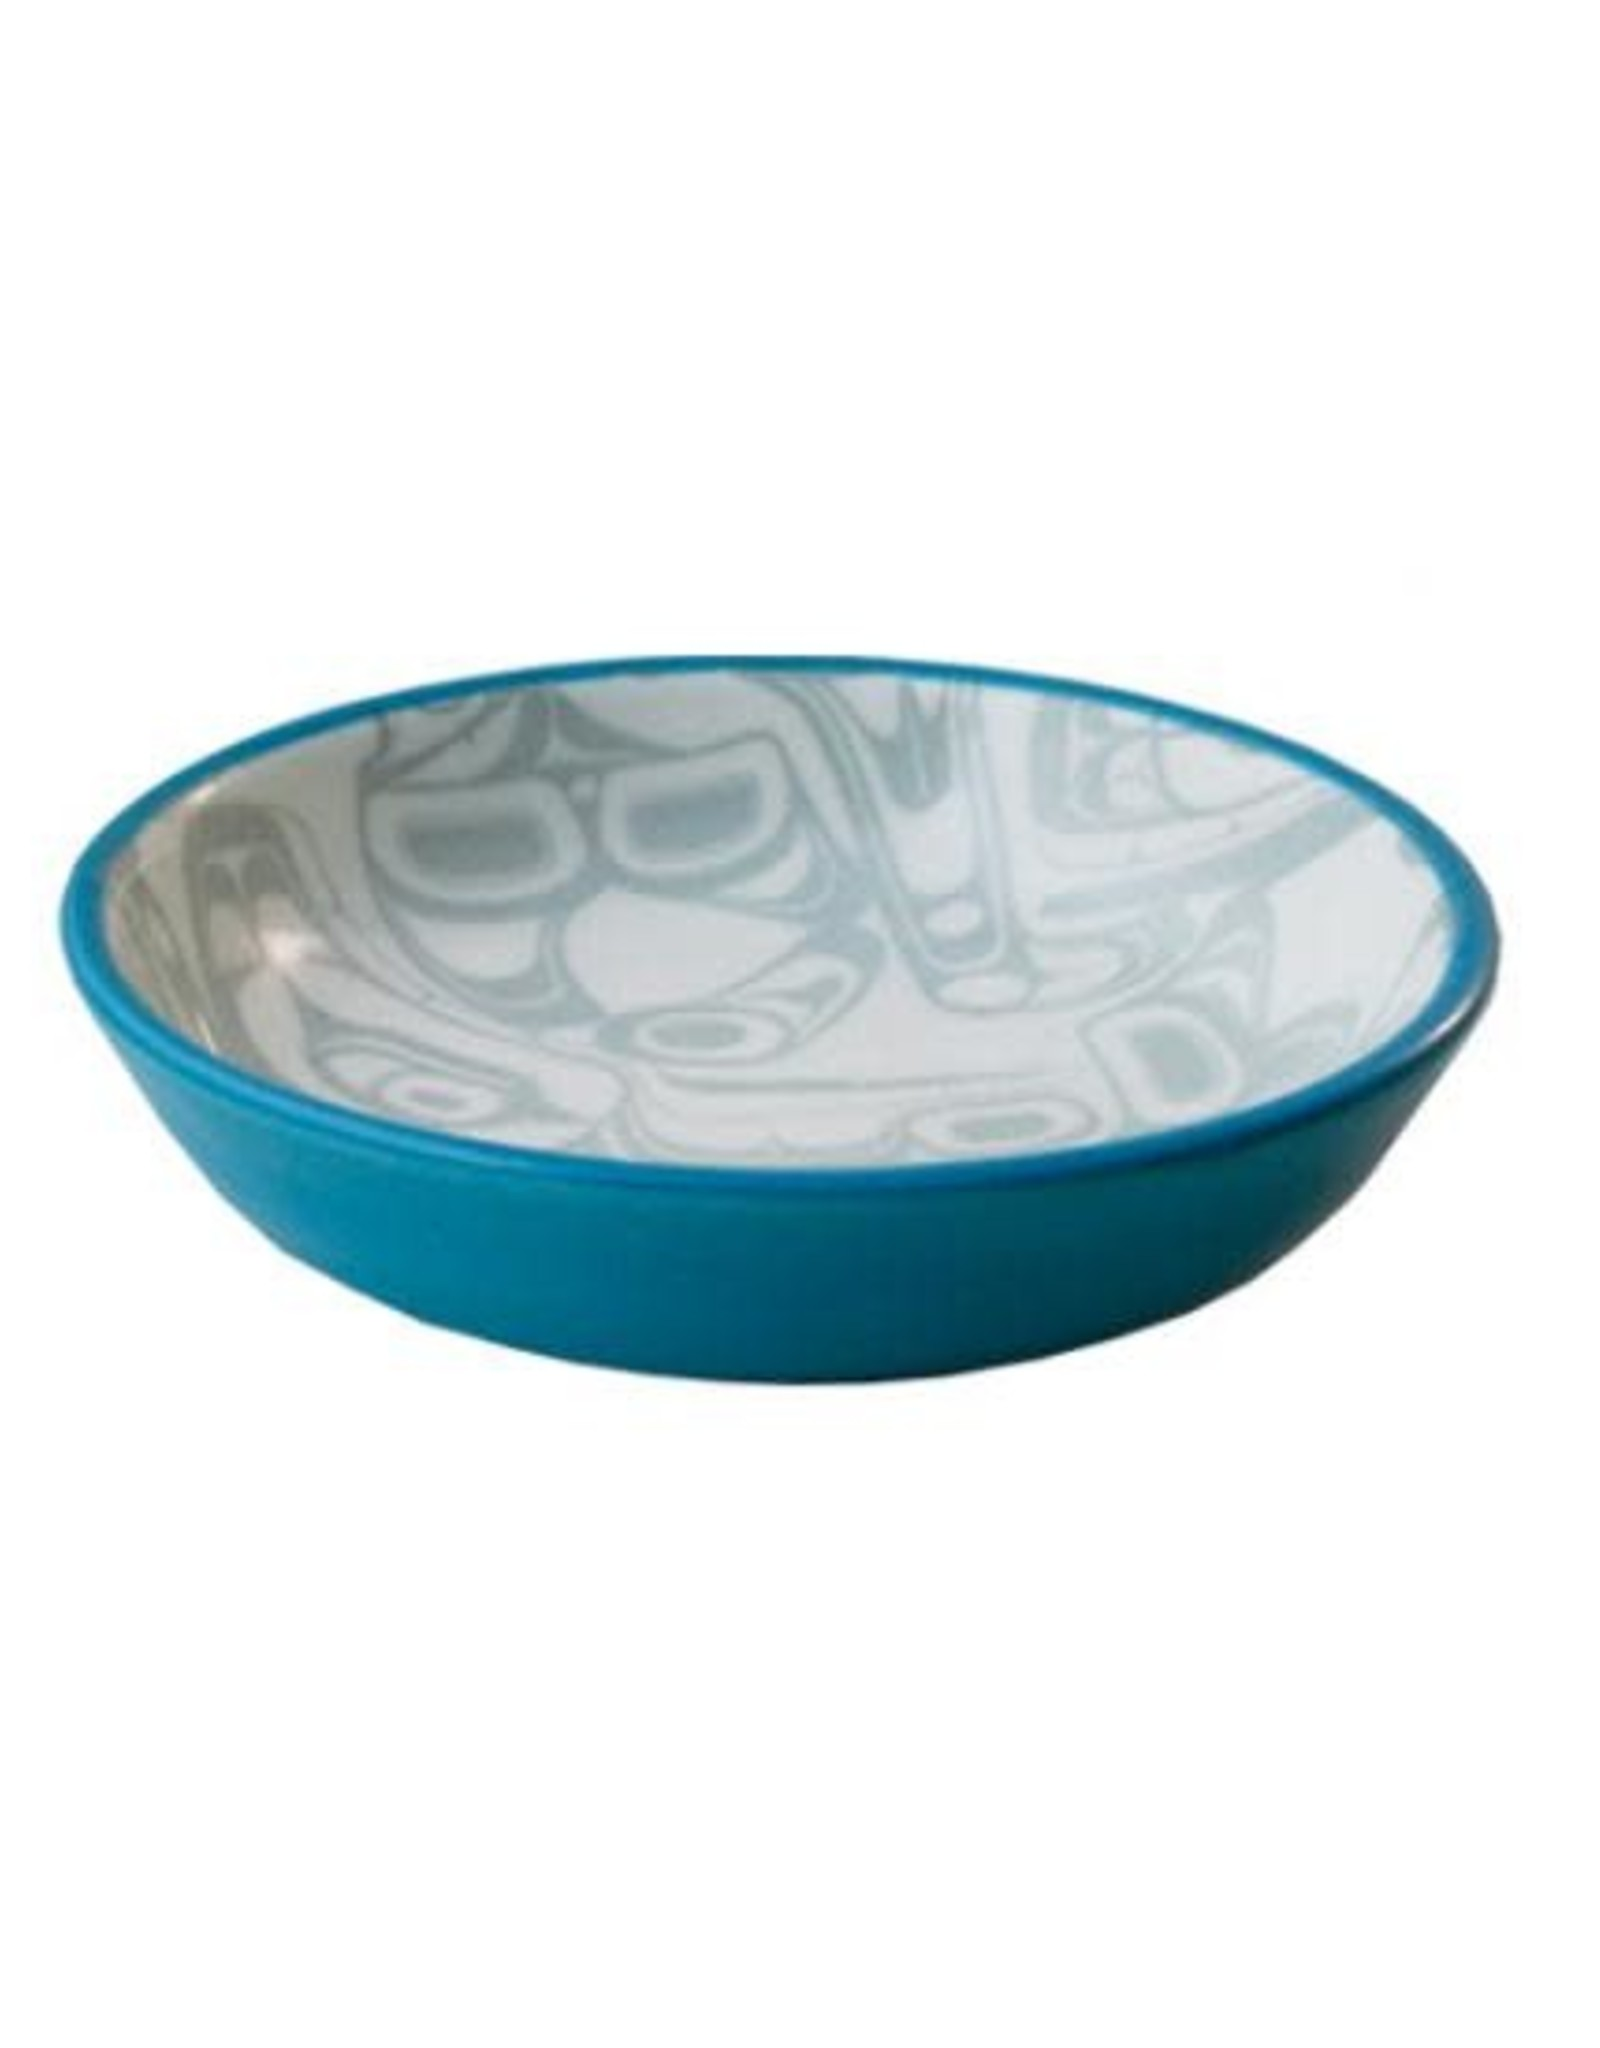 KR Orca Small Dish Turquoise/Grey Kelly Robinson